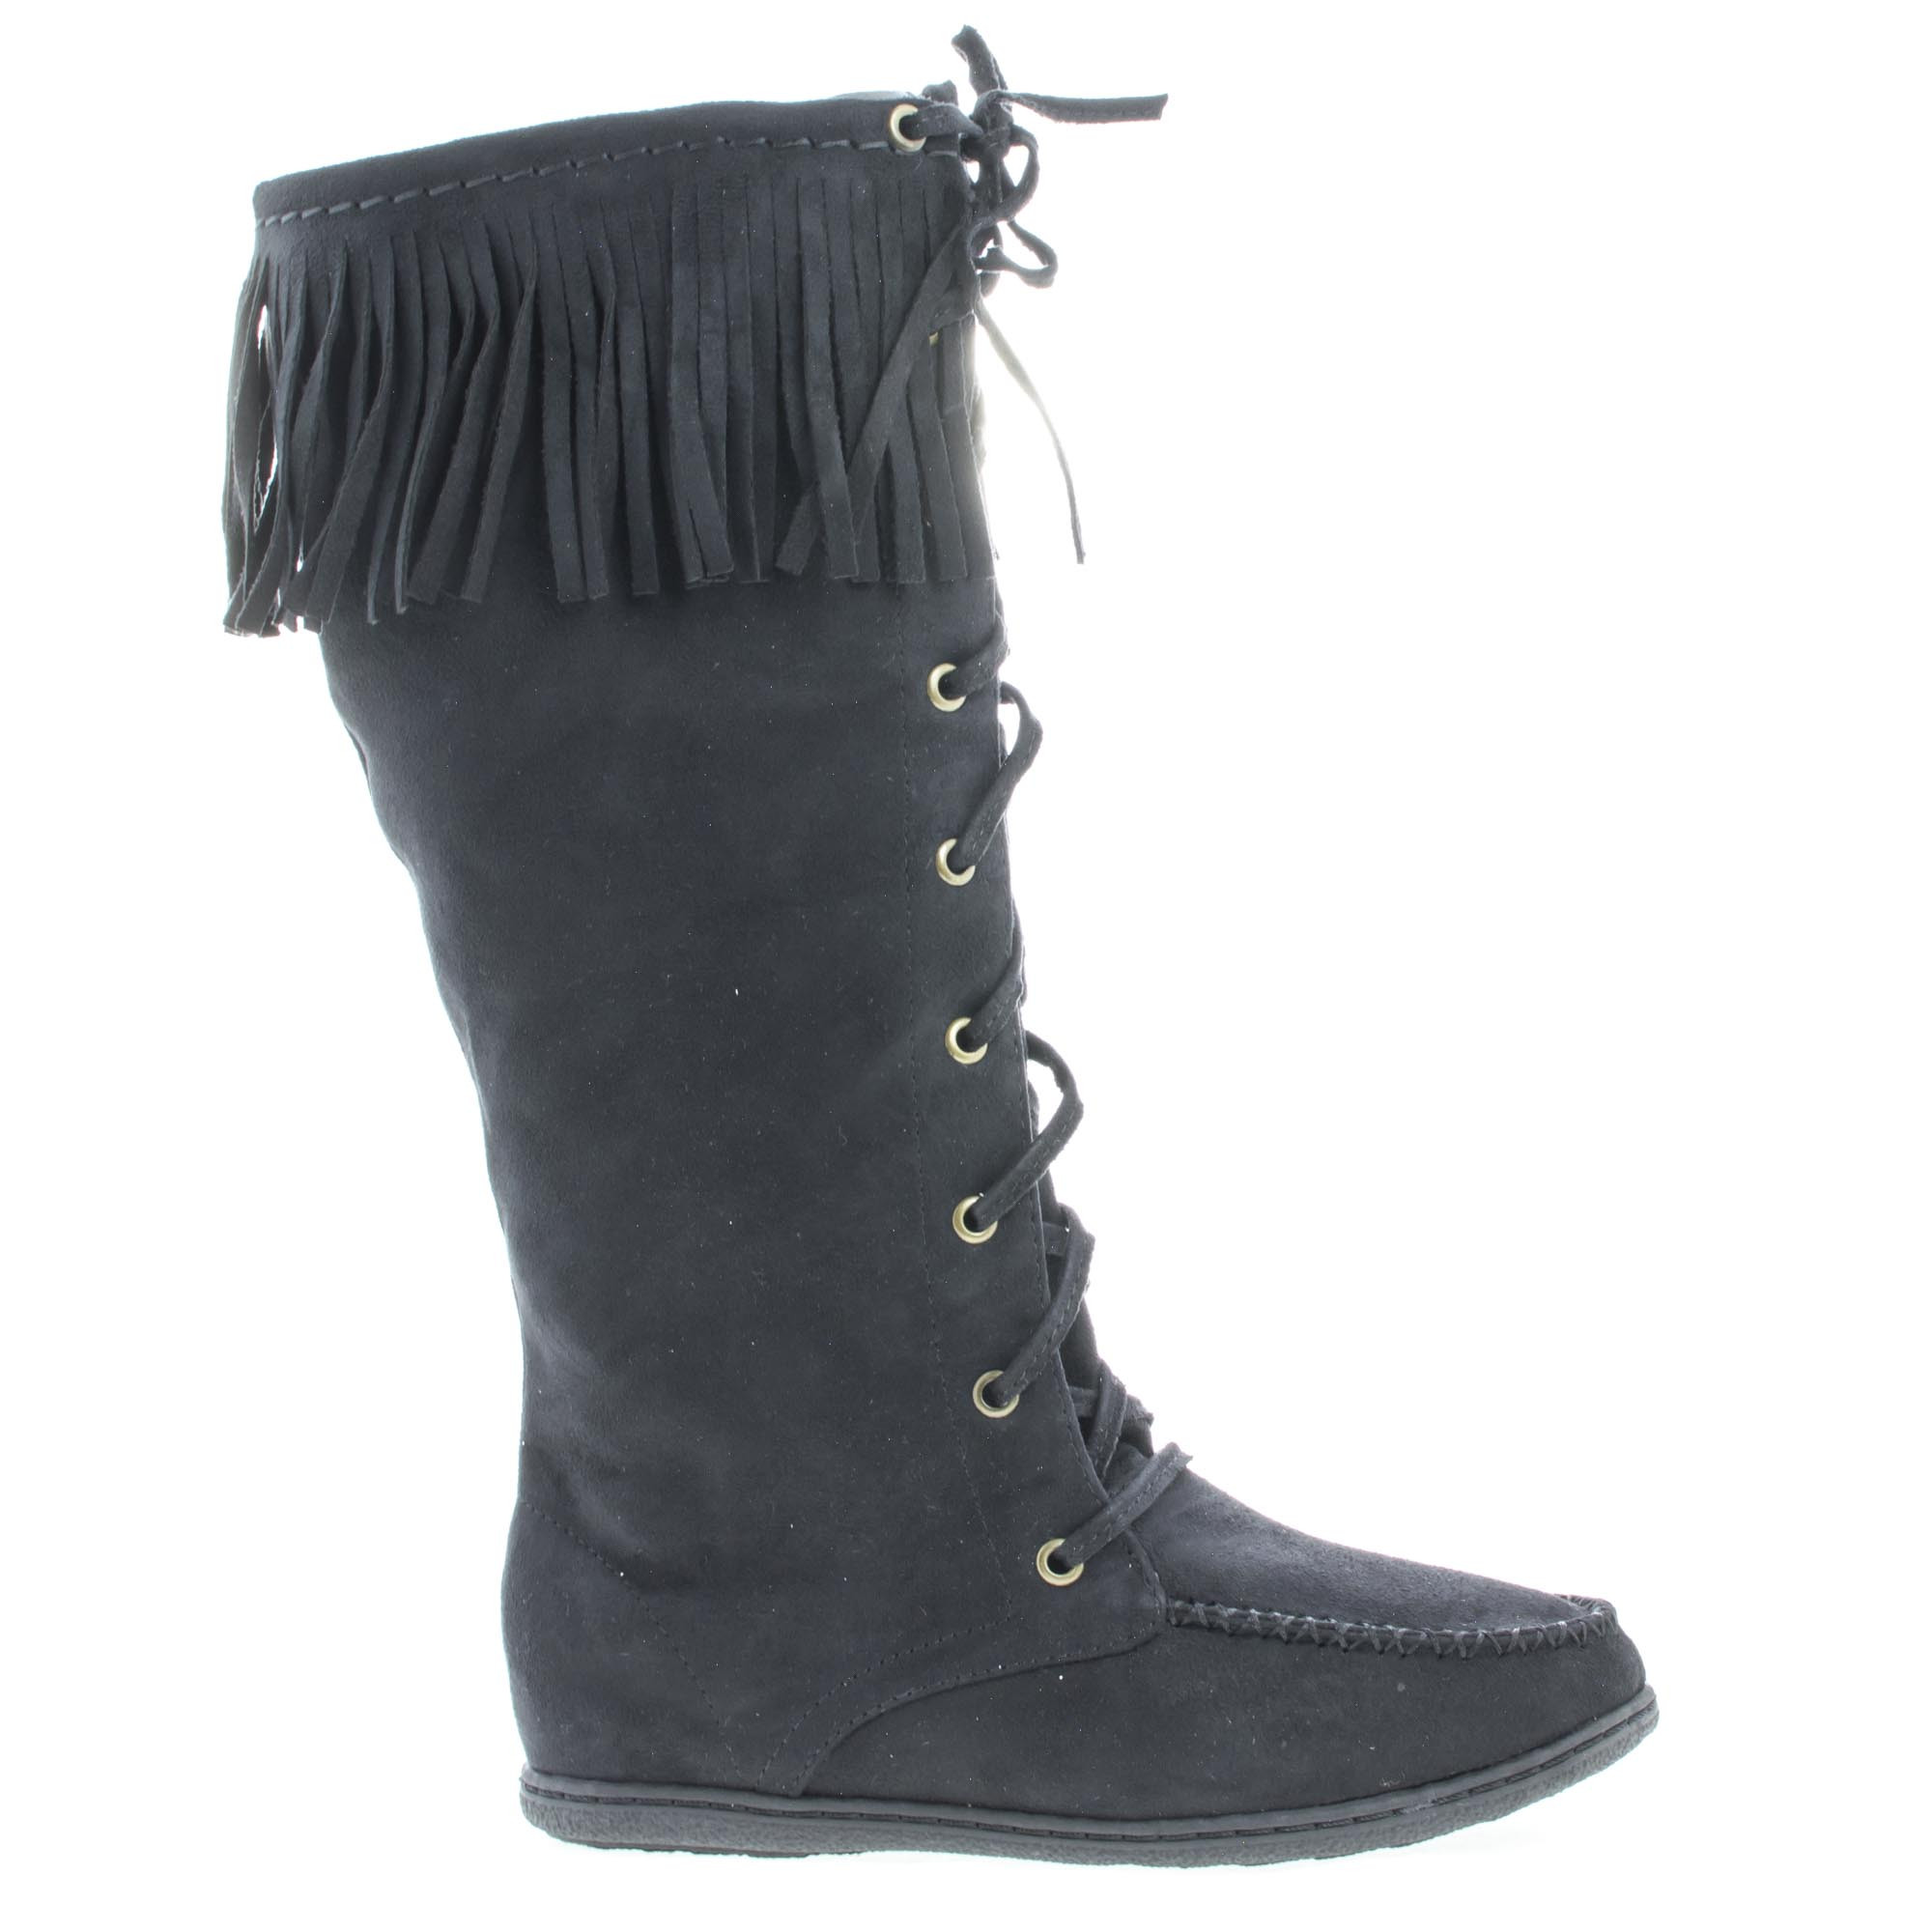 Vinery by Soda, Knee High Fringe Lace Up Moccasin Flat Boots